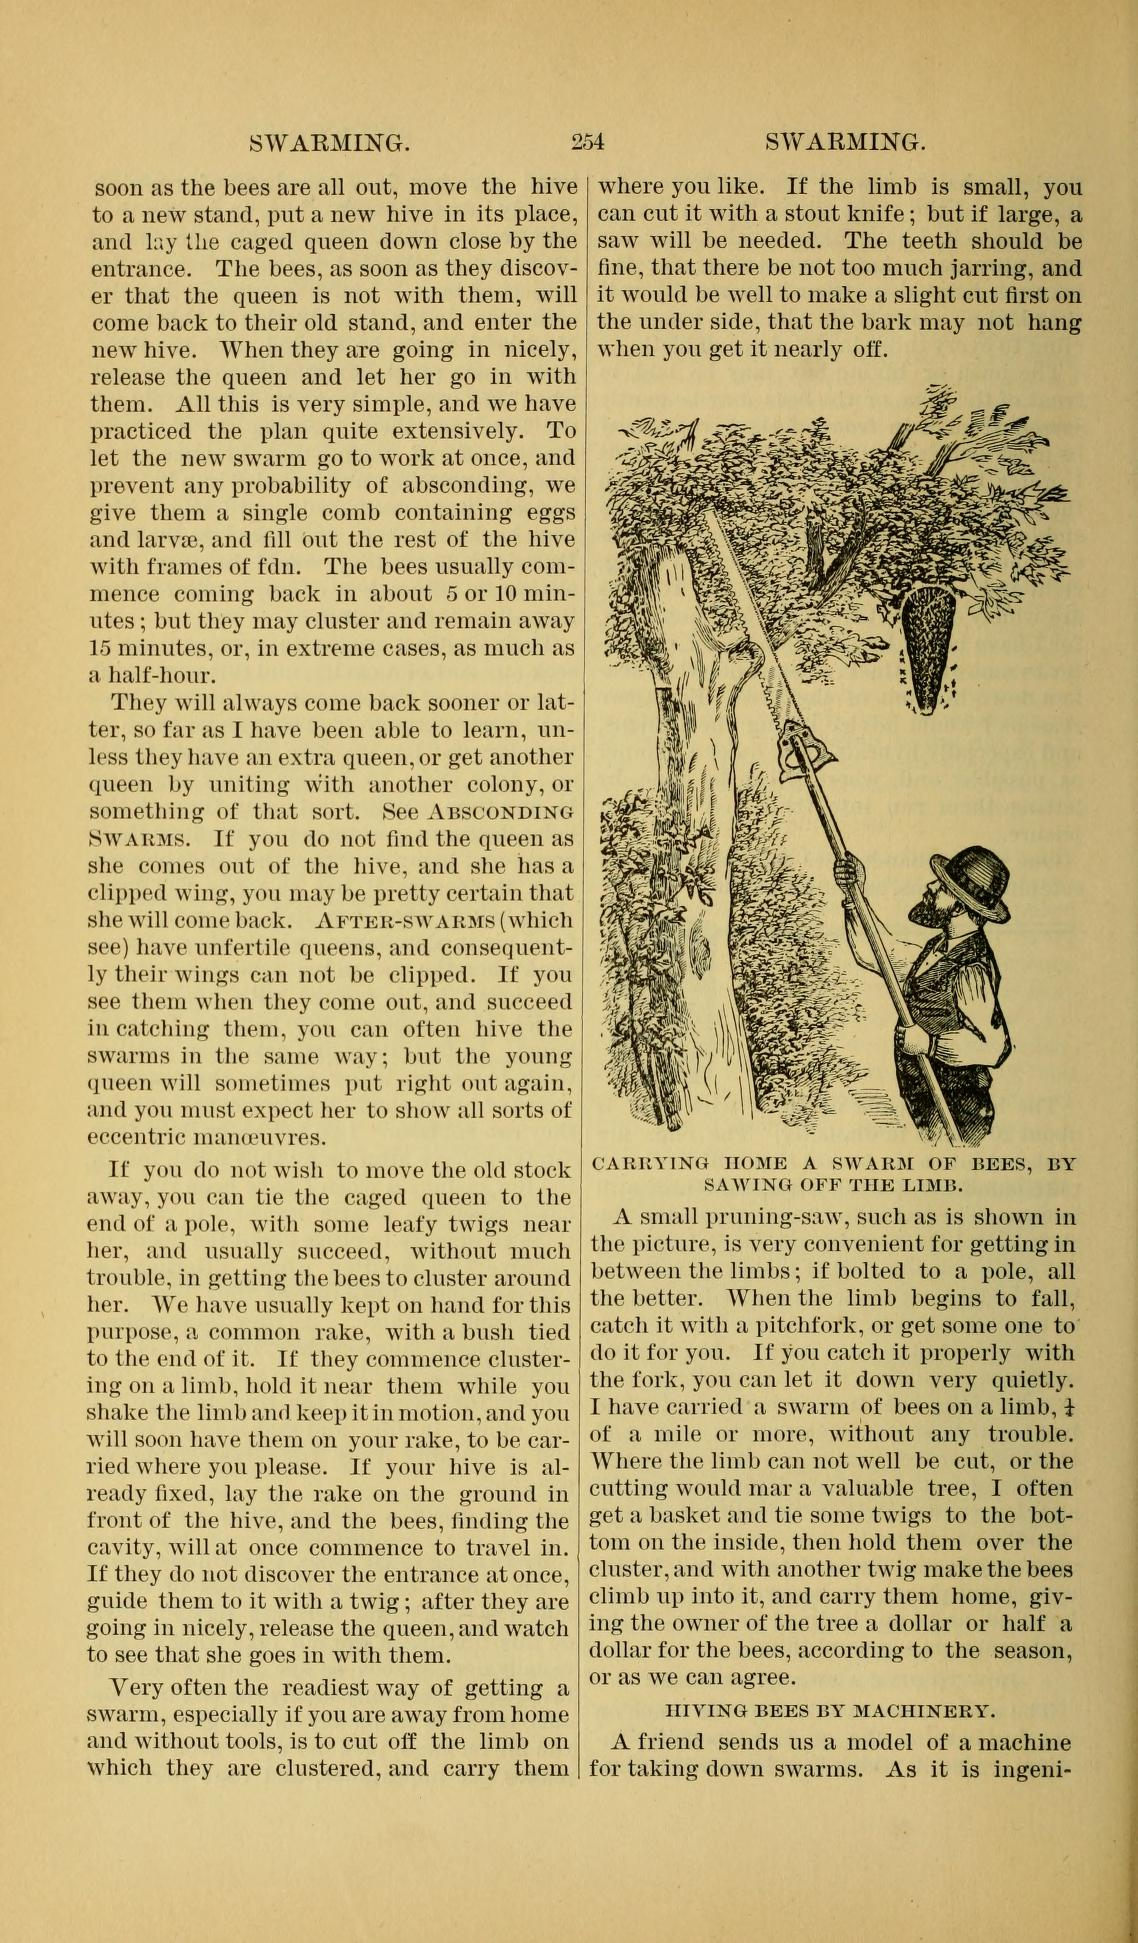 Excerpt from ABC of Bee Culture 1877